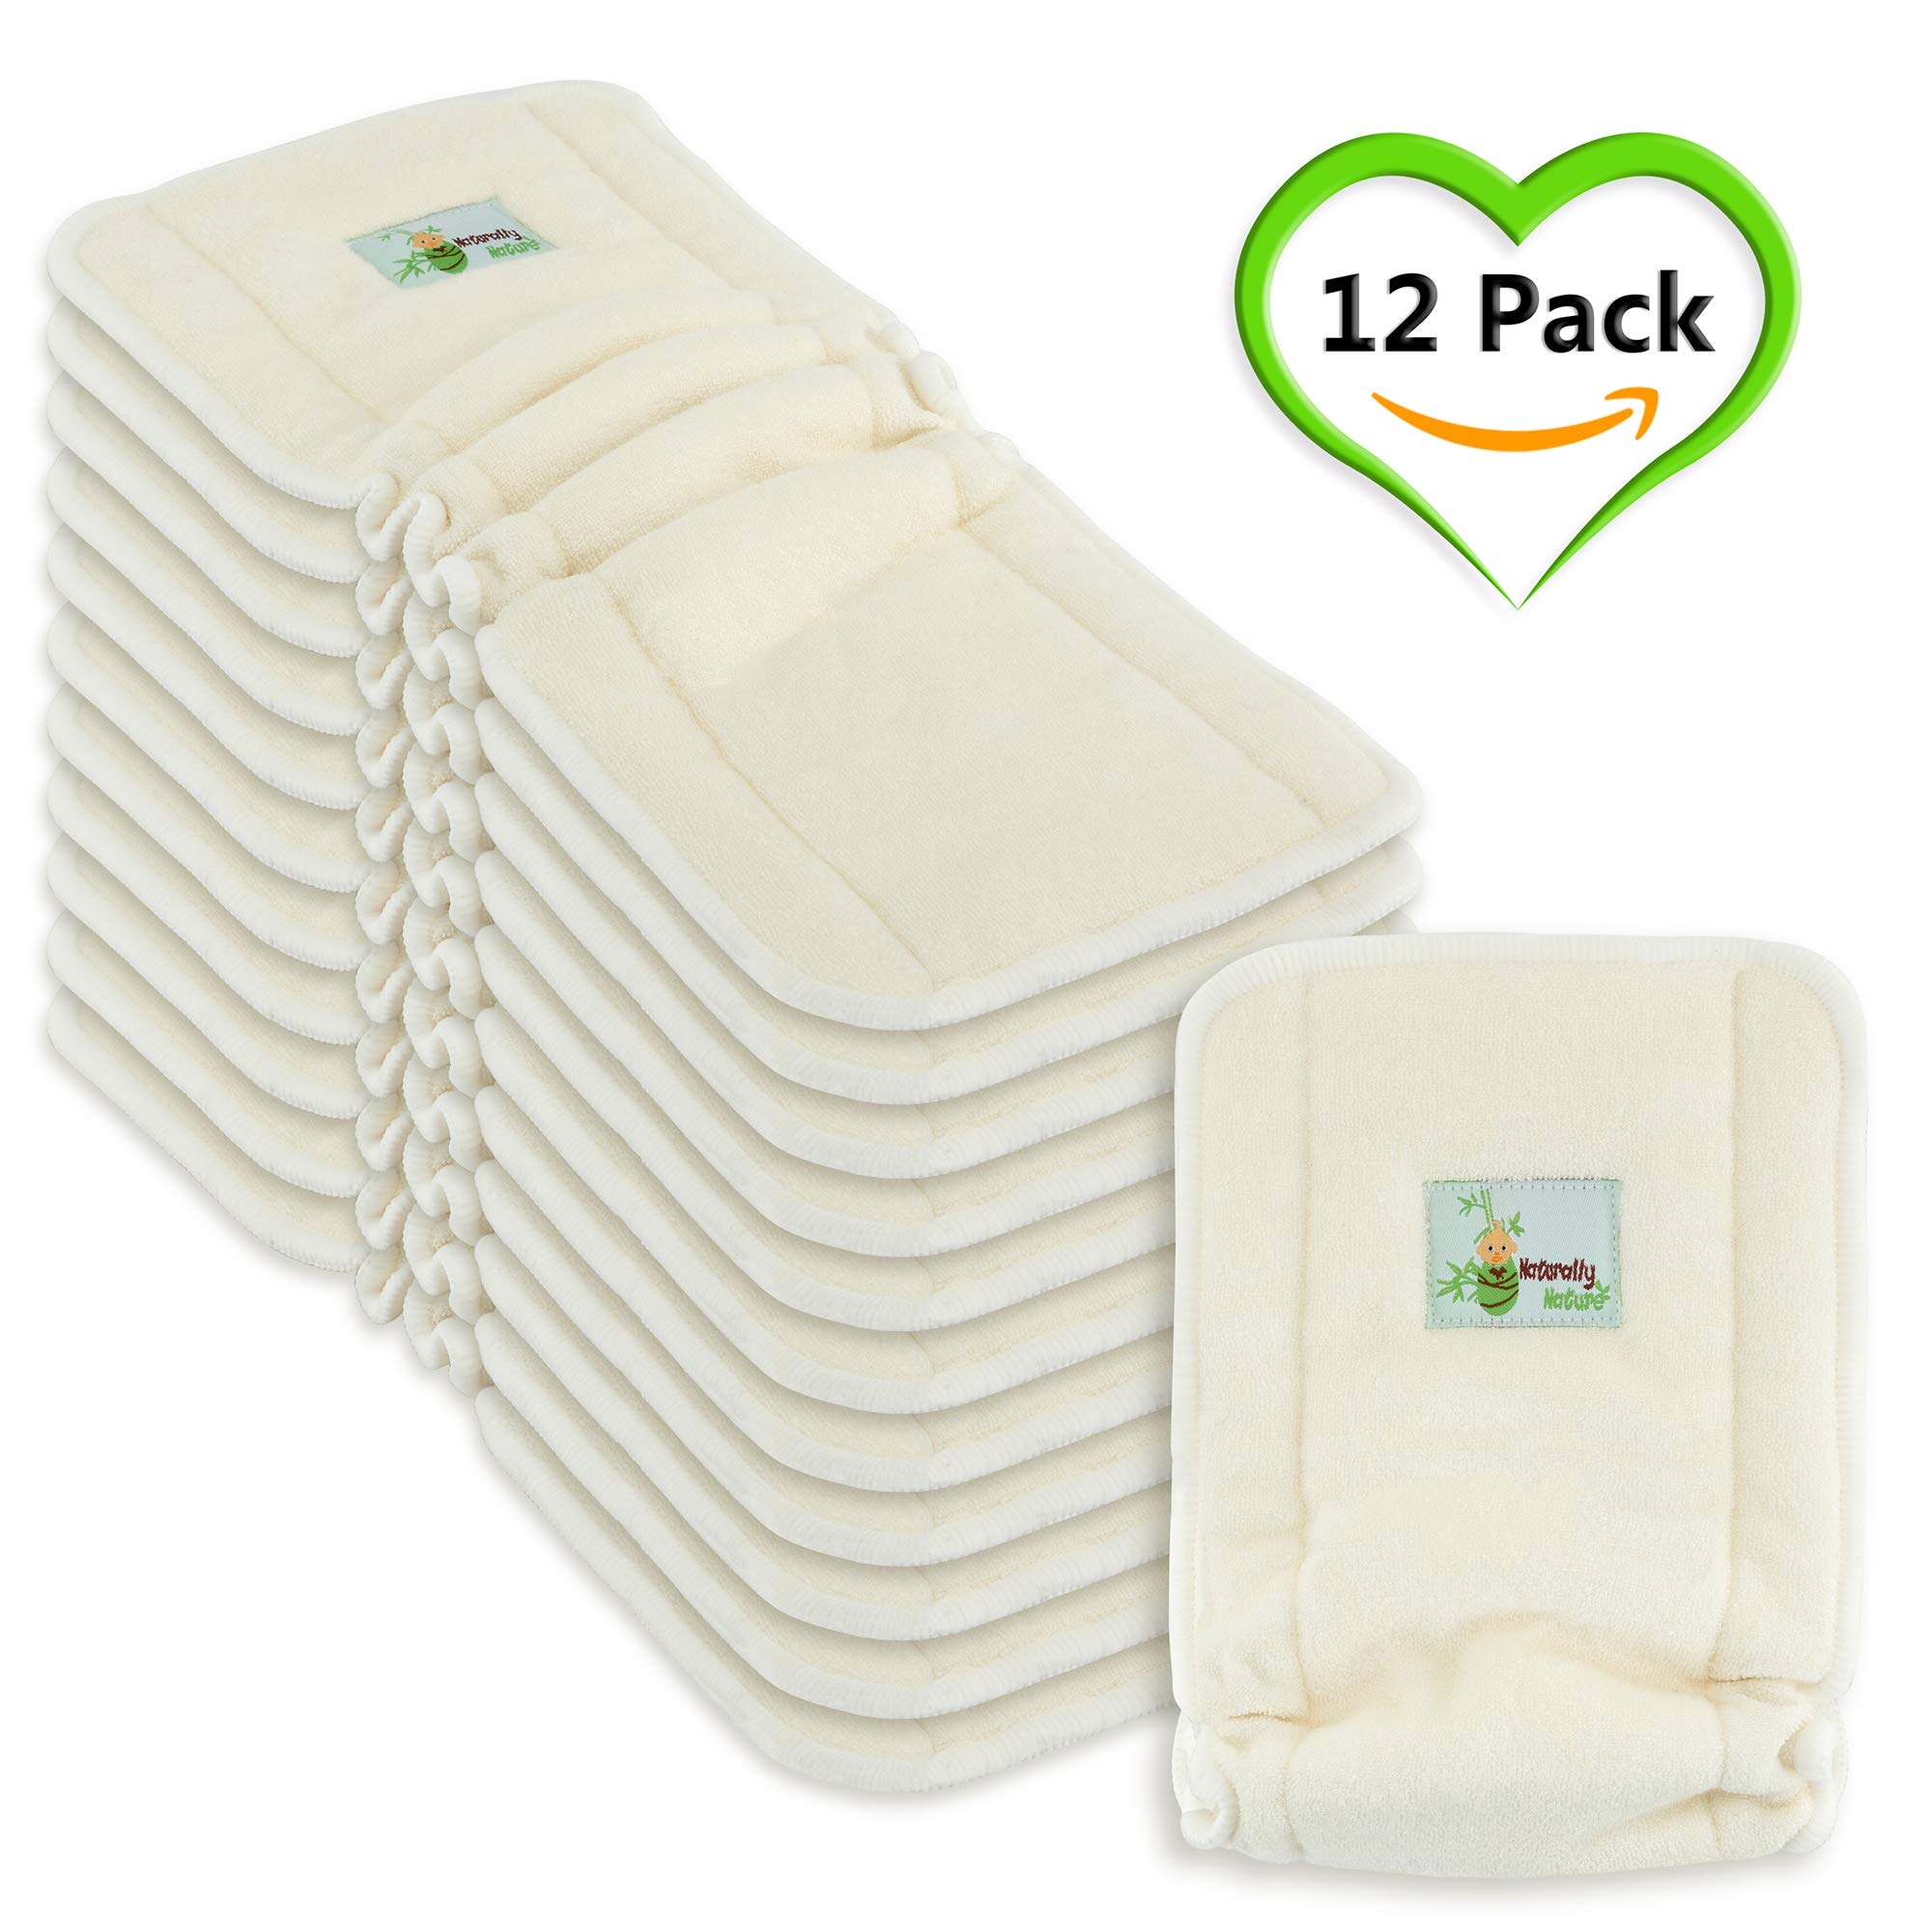 Naturally Natures 5 Layer Cloth Diaper - Inserts - with Gussetts Bamboo Reusable Liners for Cloth Diapers (Pack of 12)